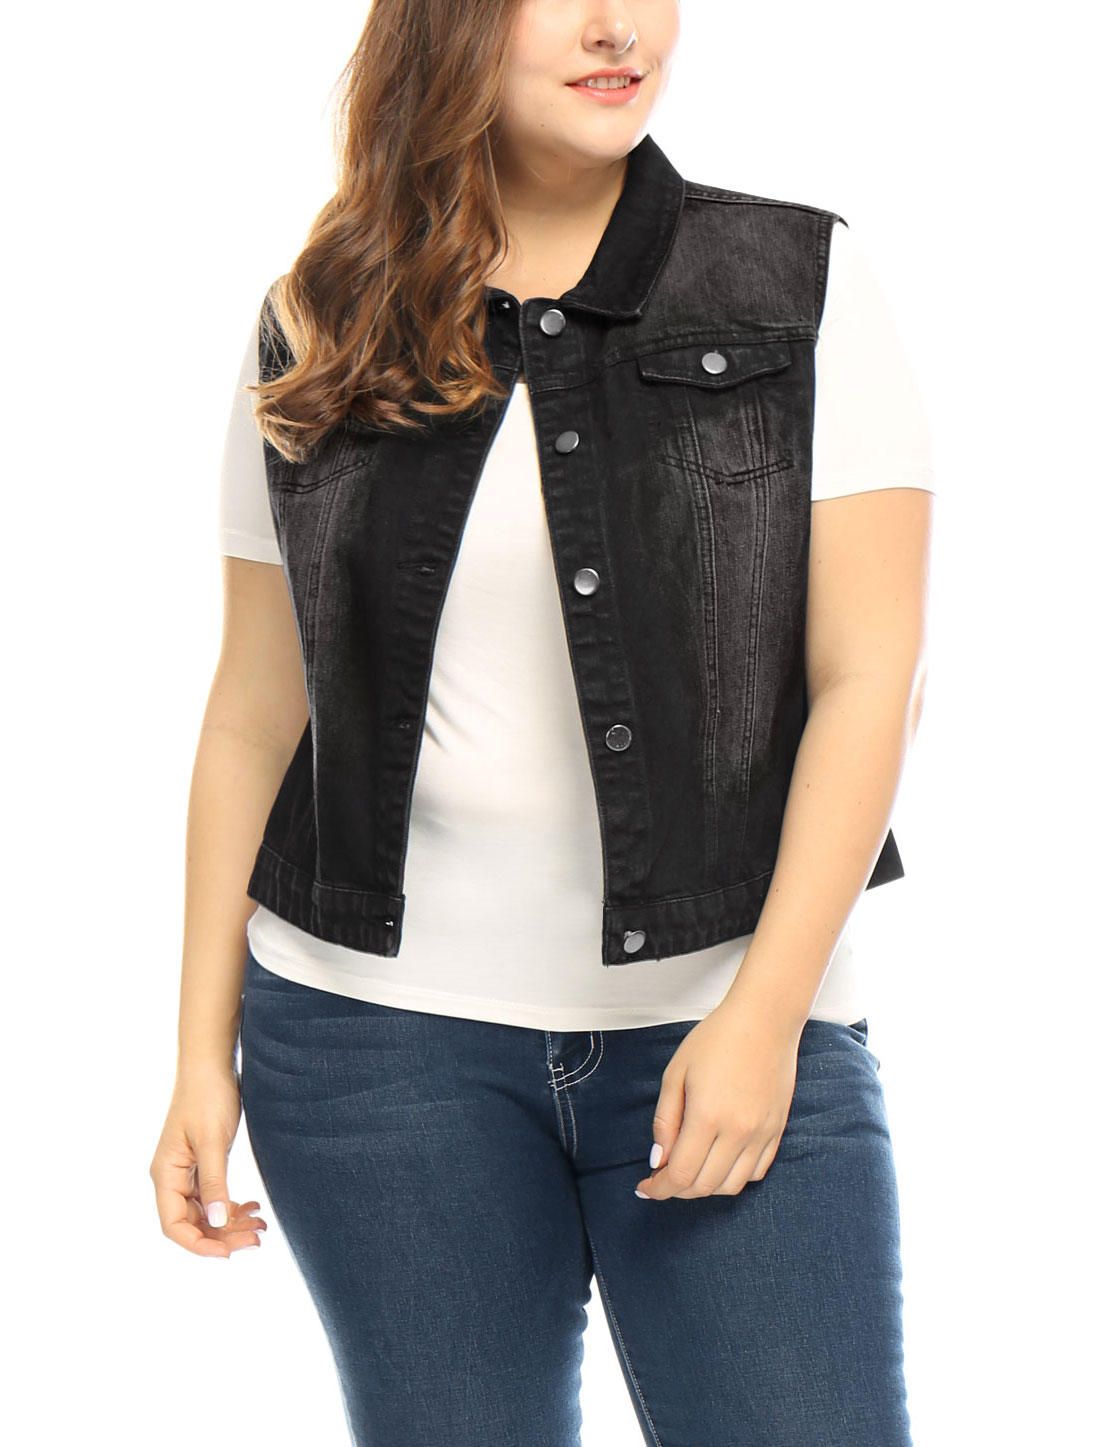 Women Plus Size Chest Pockets Single Breasted Denim Vest Black 3X